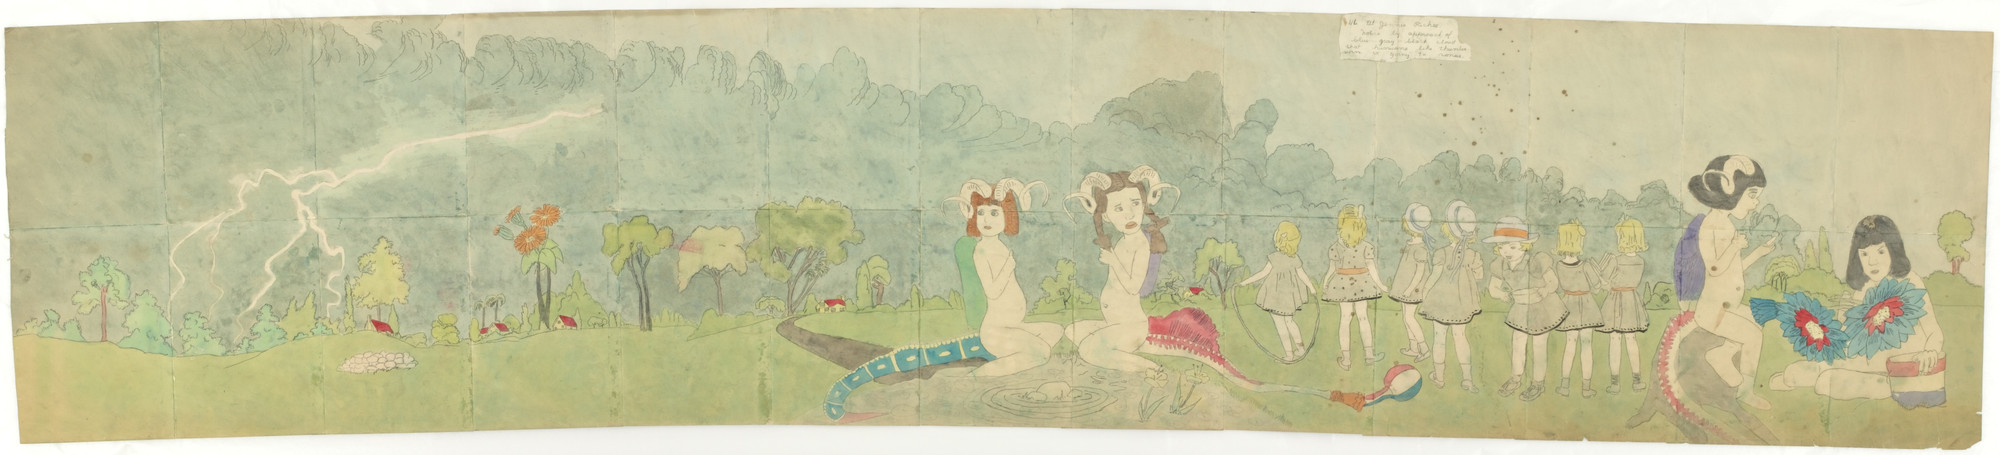 Henry Darger. 116. At Jennie Richee. Notice by approach of blue gray black cloud that hurricane like thunder storm is going to renew., 117. At Jennie Richee. To avoid being out in the open when storm renews, they take chance going through farm possessed by Glandelin. c. 1960s